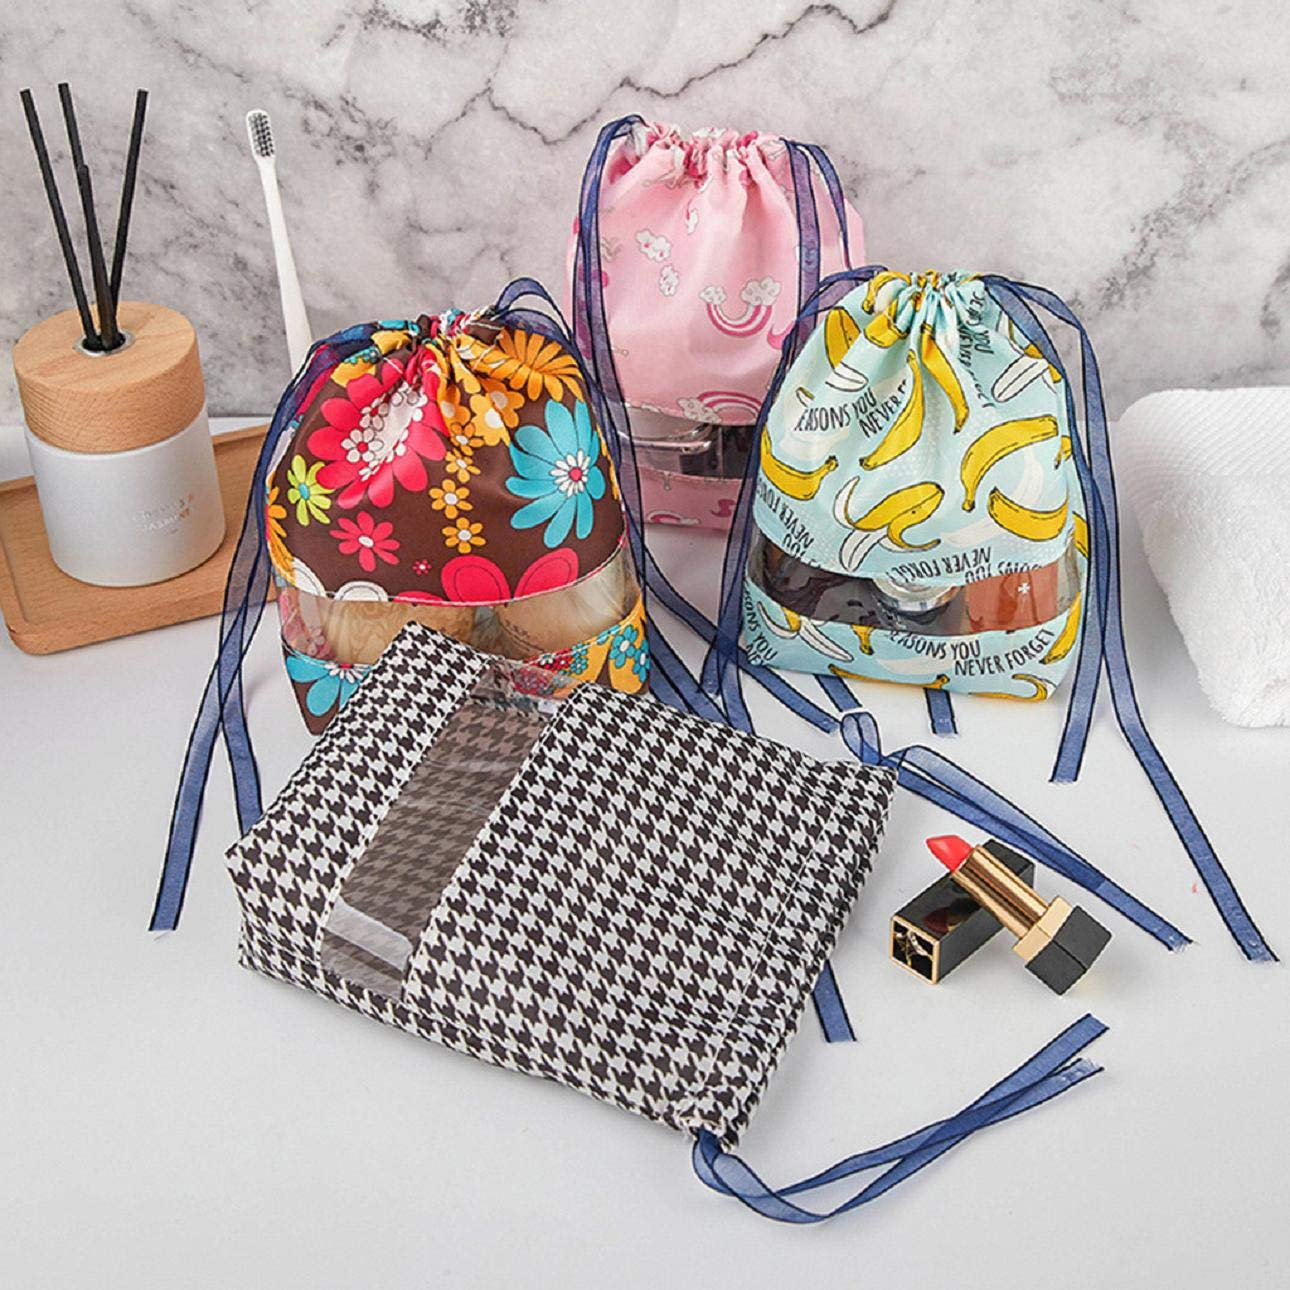 Buy Cinhent Travel Cosmetic Makeup Bags - Portable Prints